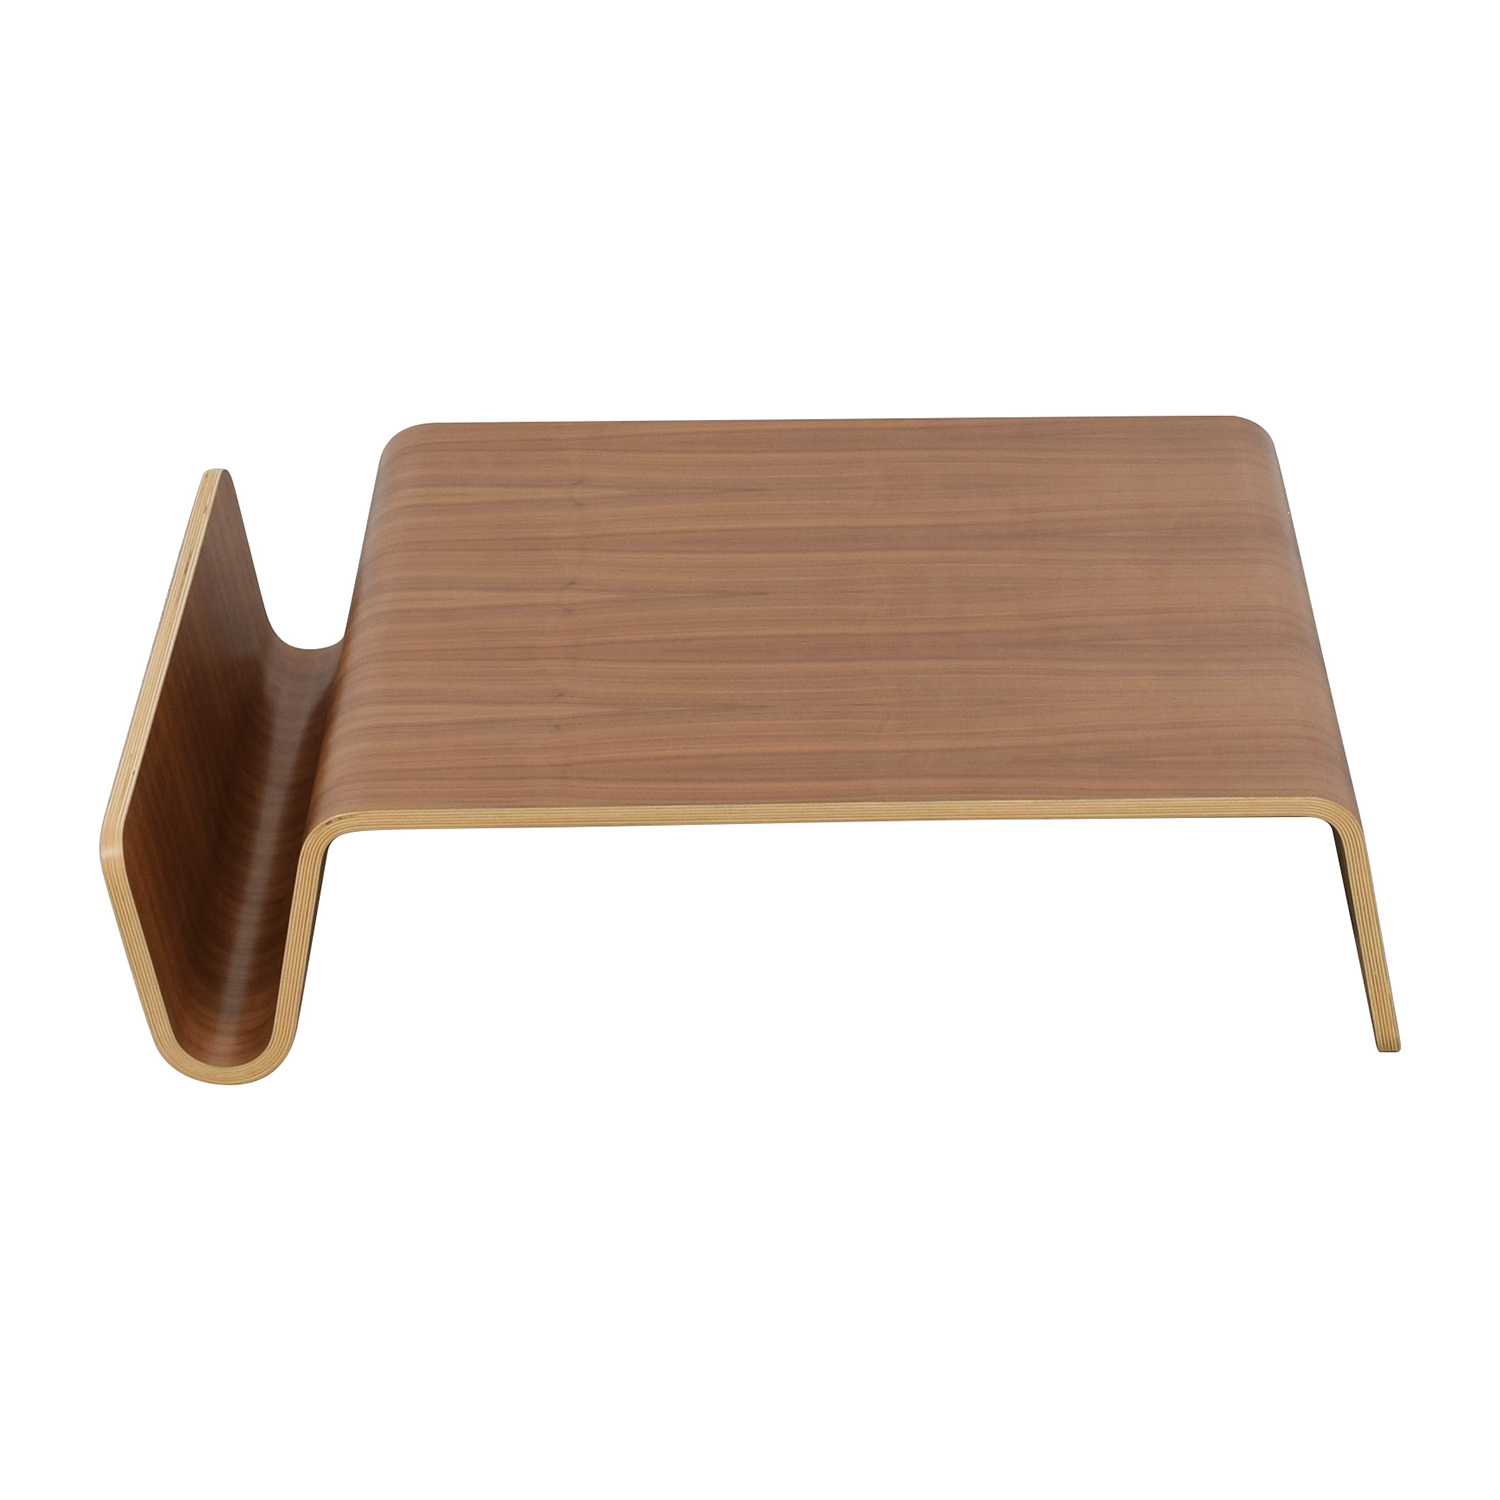 InMod Scando Coffee Table / Coffee Tables